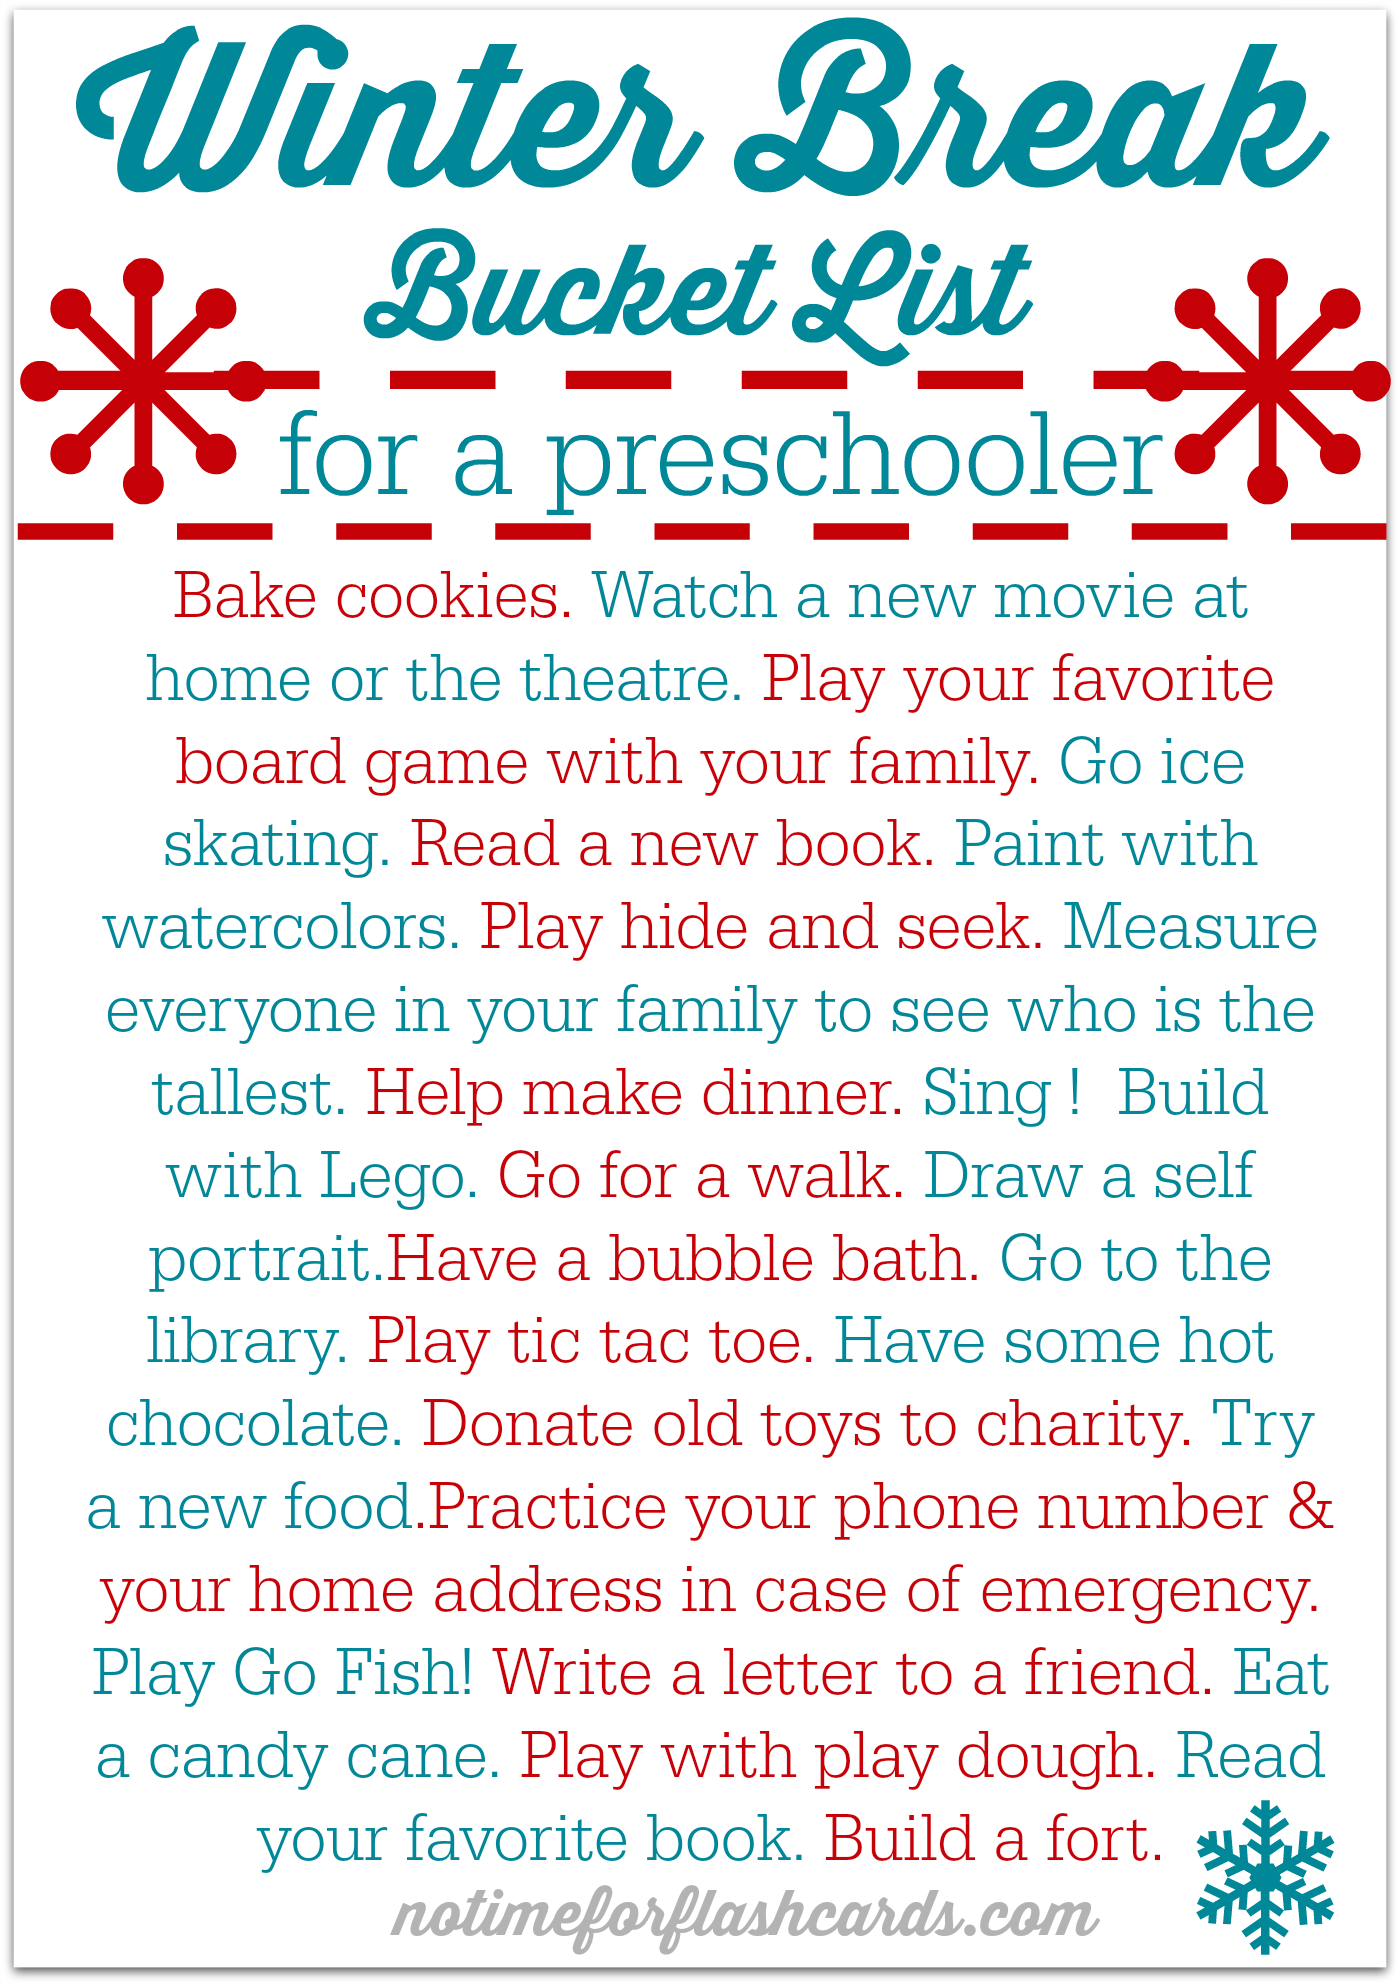 Free printable winter break bucket list for preschoolers for Christmas activities for families to do